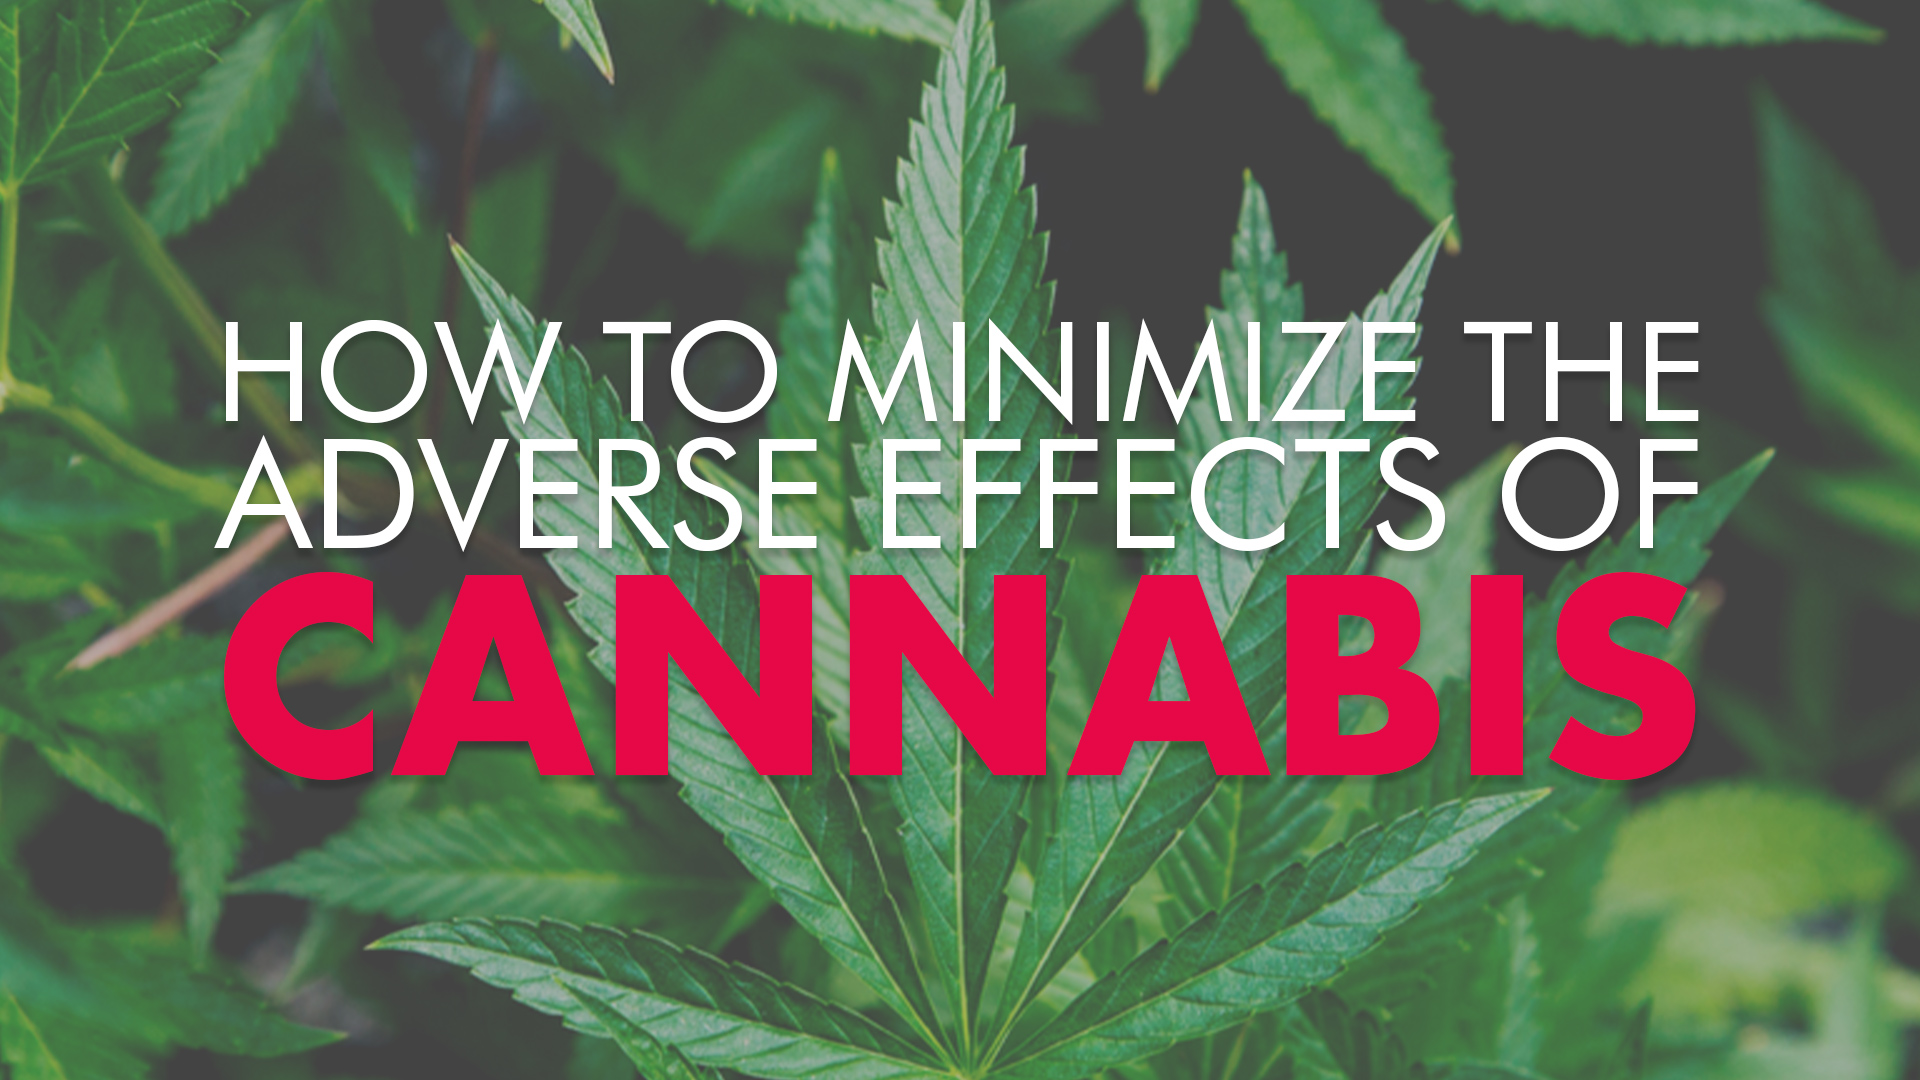 How to Minimize Adverse Effects of Cannabis